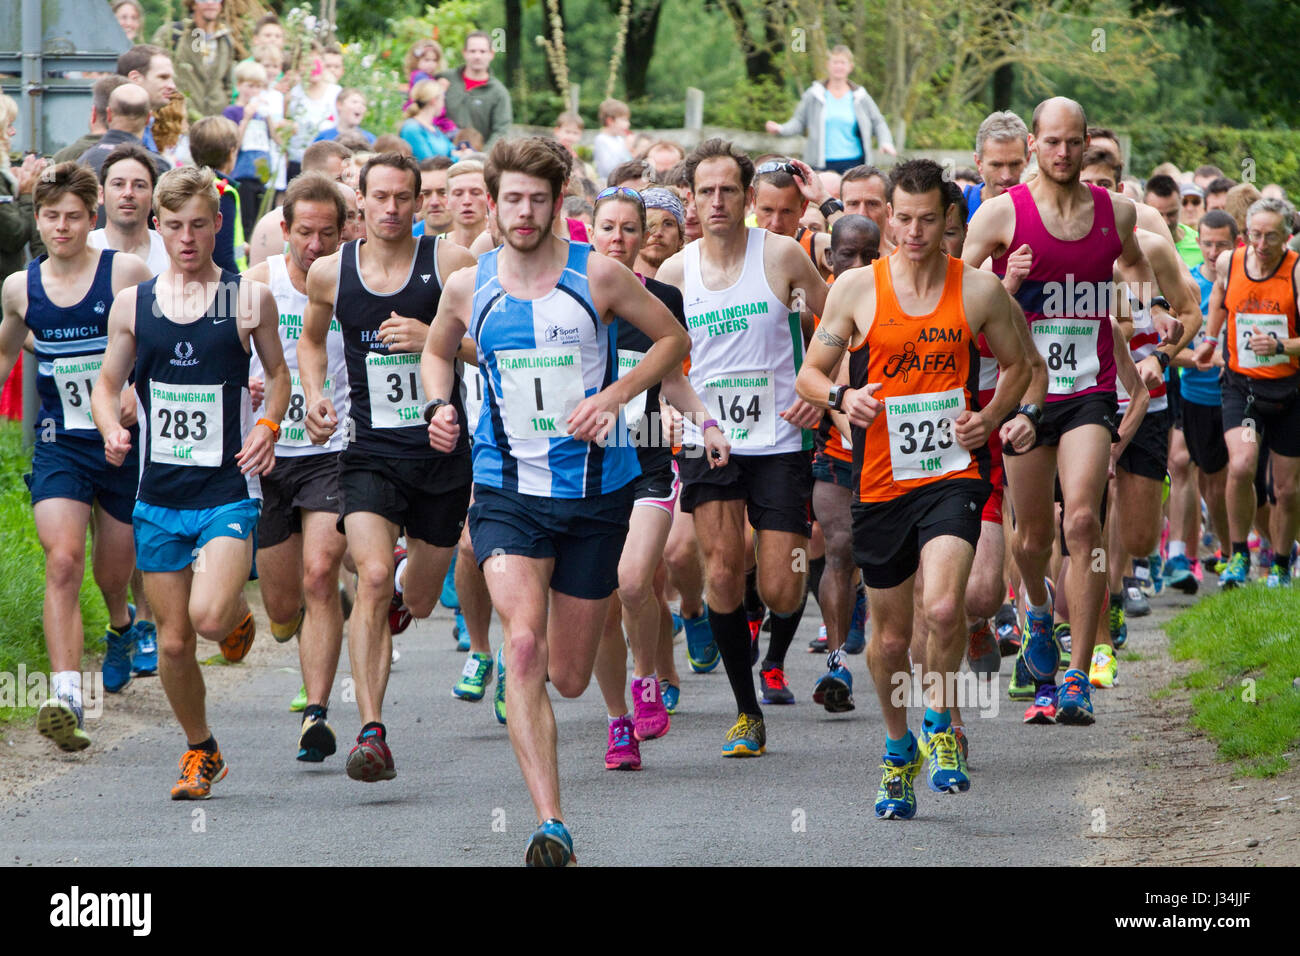 Runners at the start of a road race - Stock Image